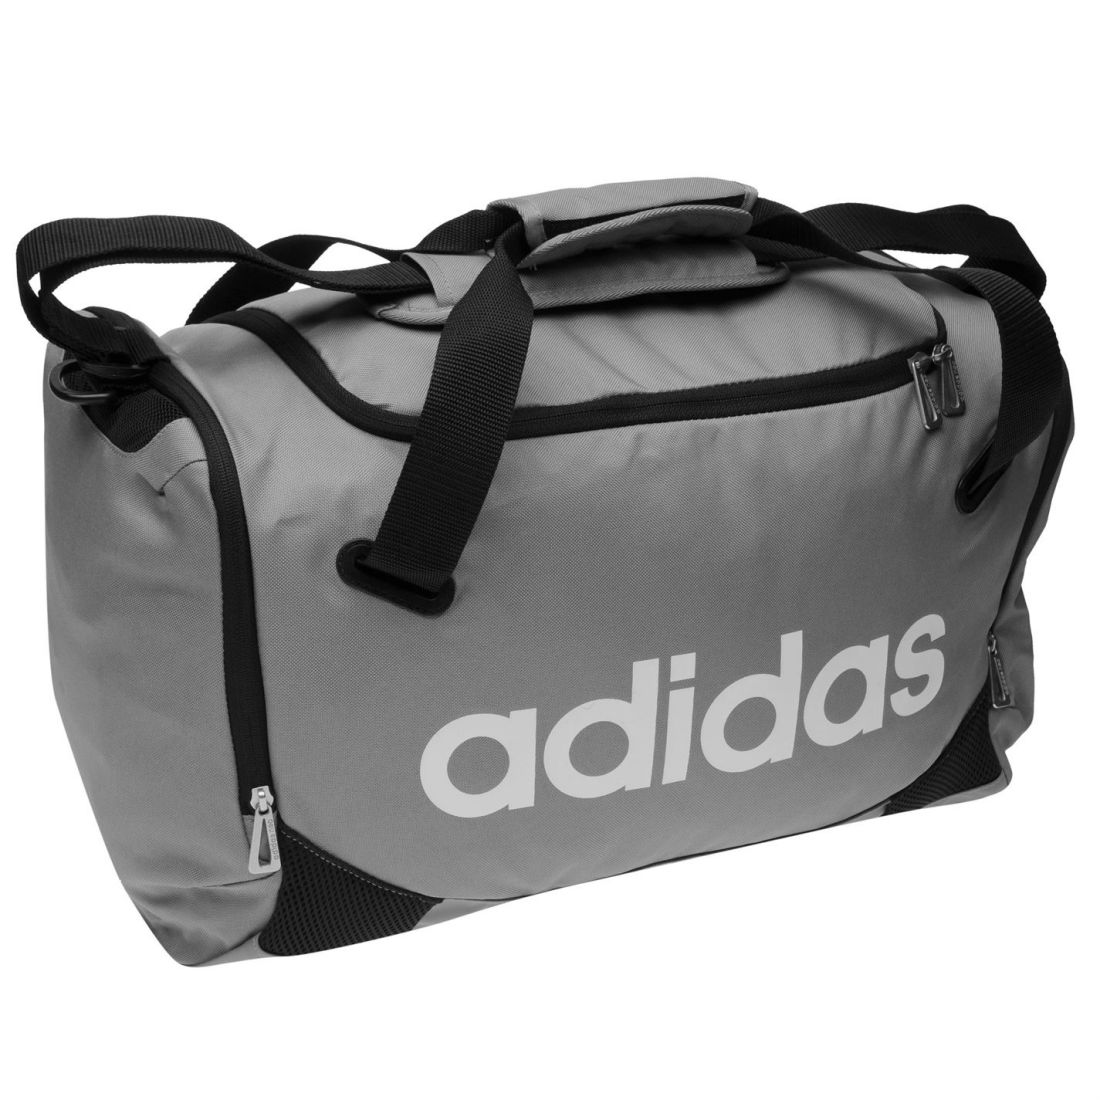 7386b25b42fe adidas Lined Small Team Bag Holdall Carrier Sports Training Sack Accessories